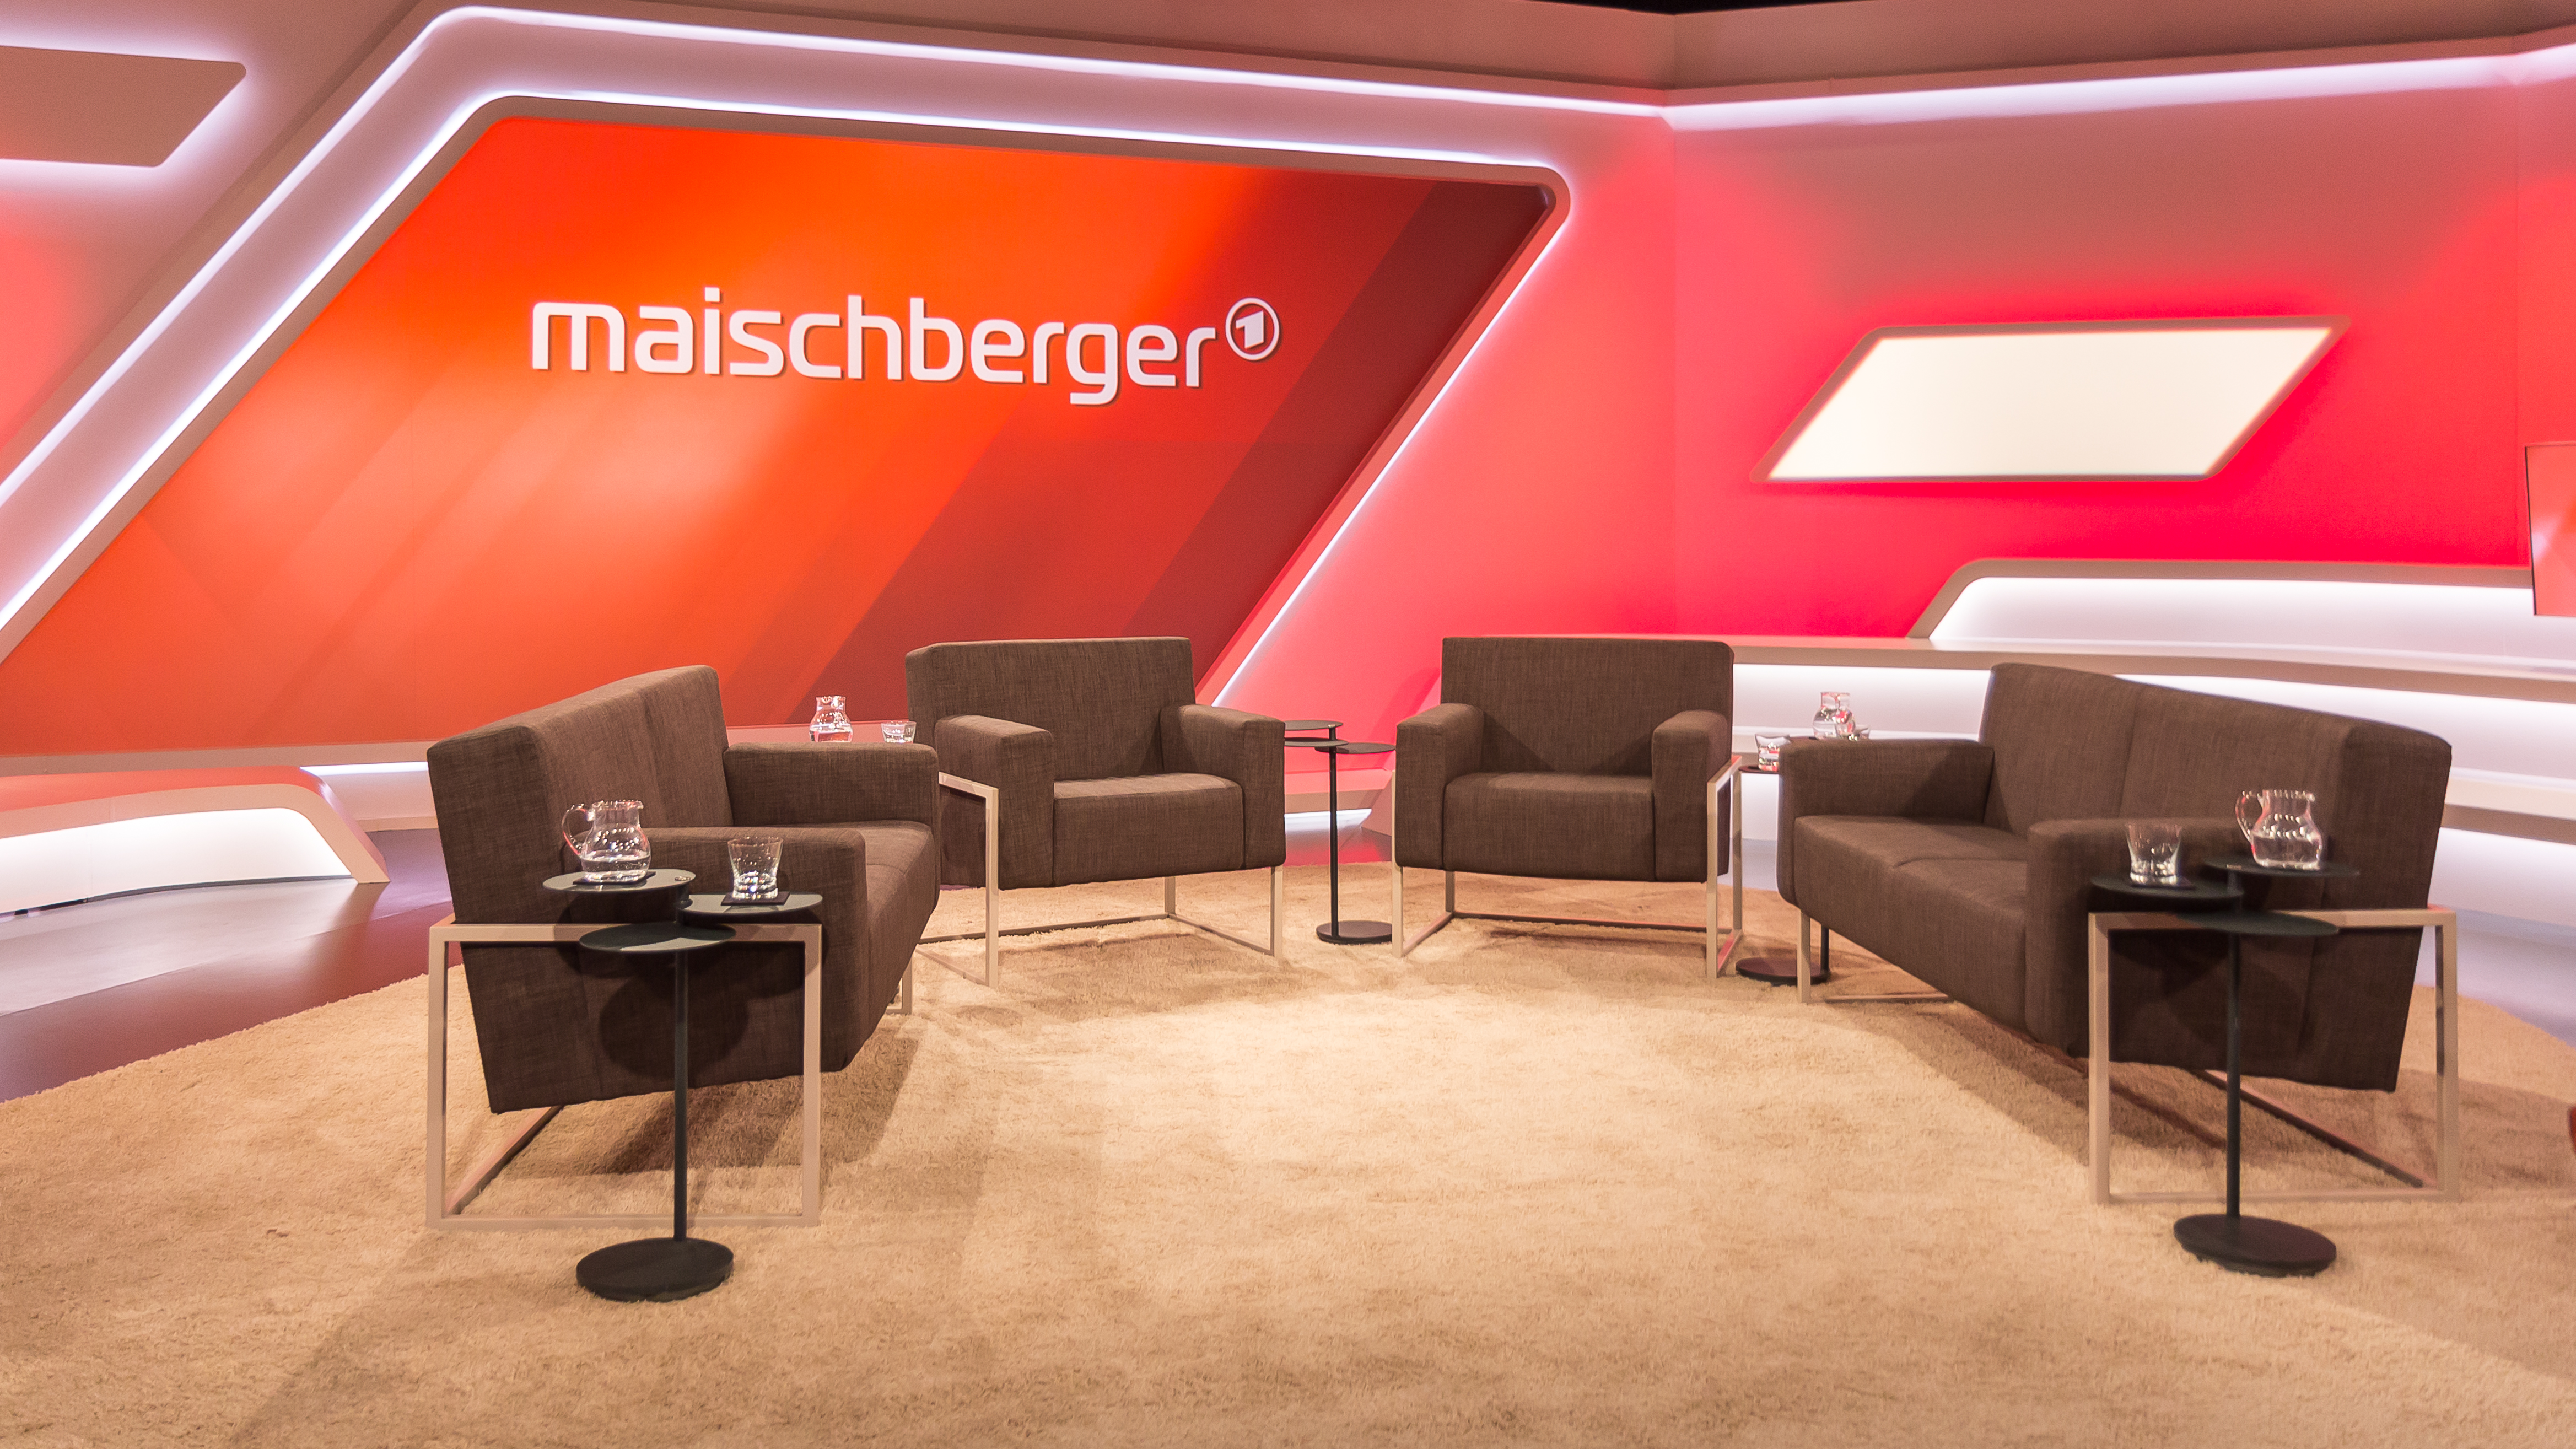 Image Result For Maischberger